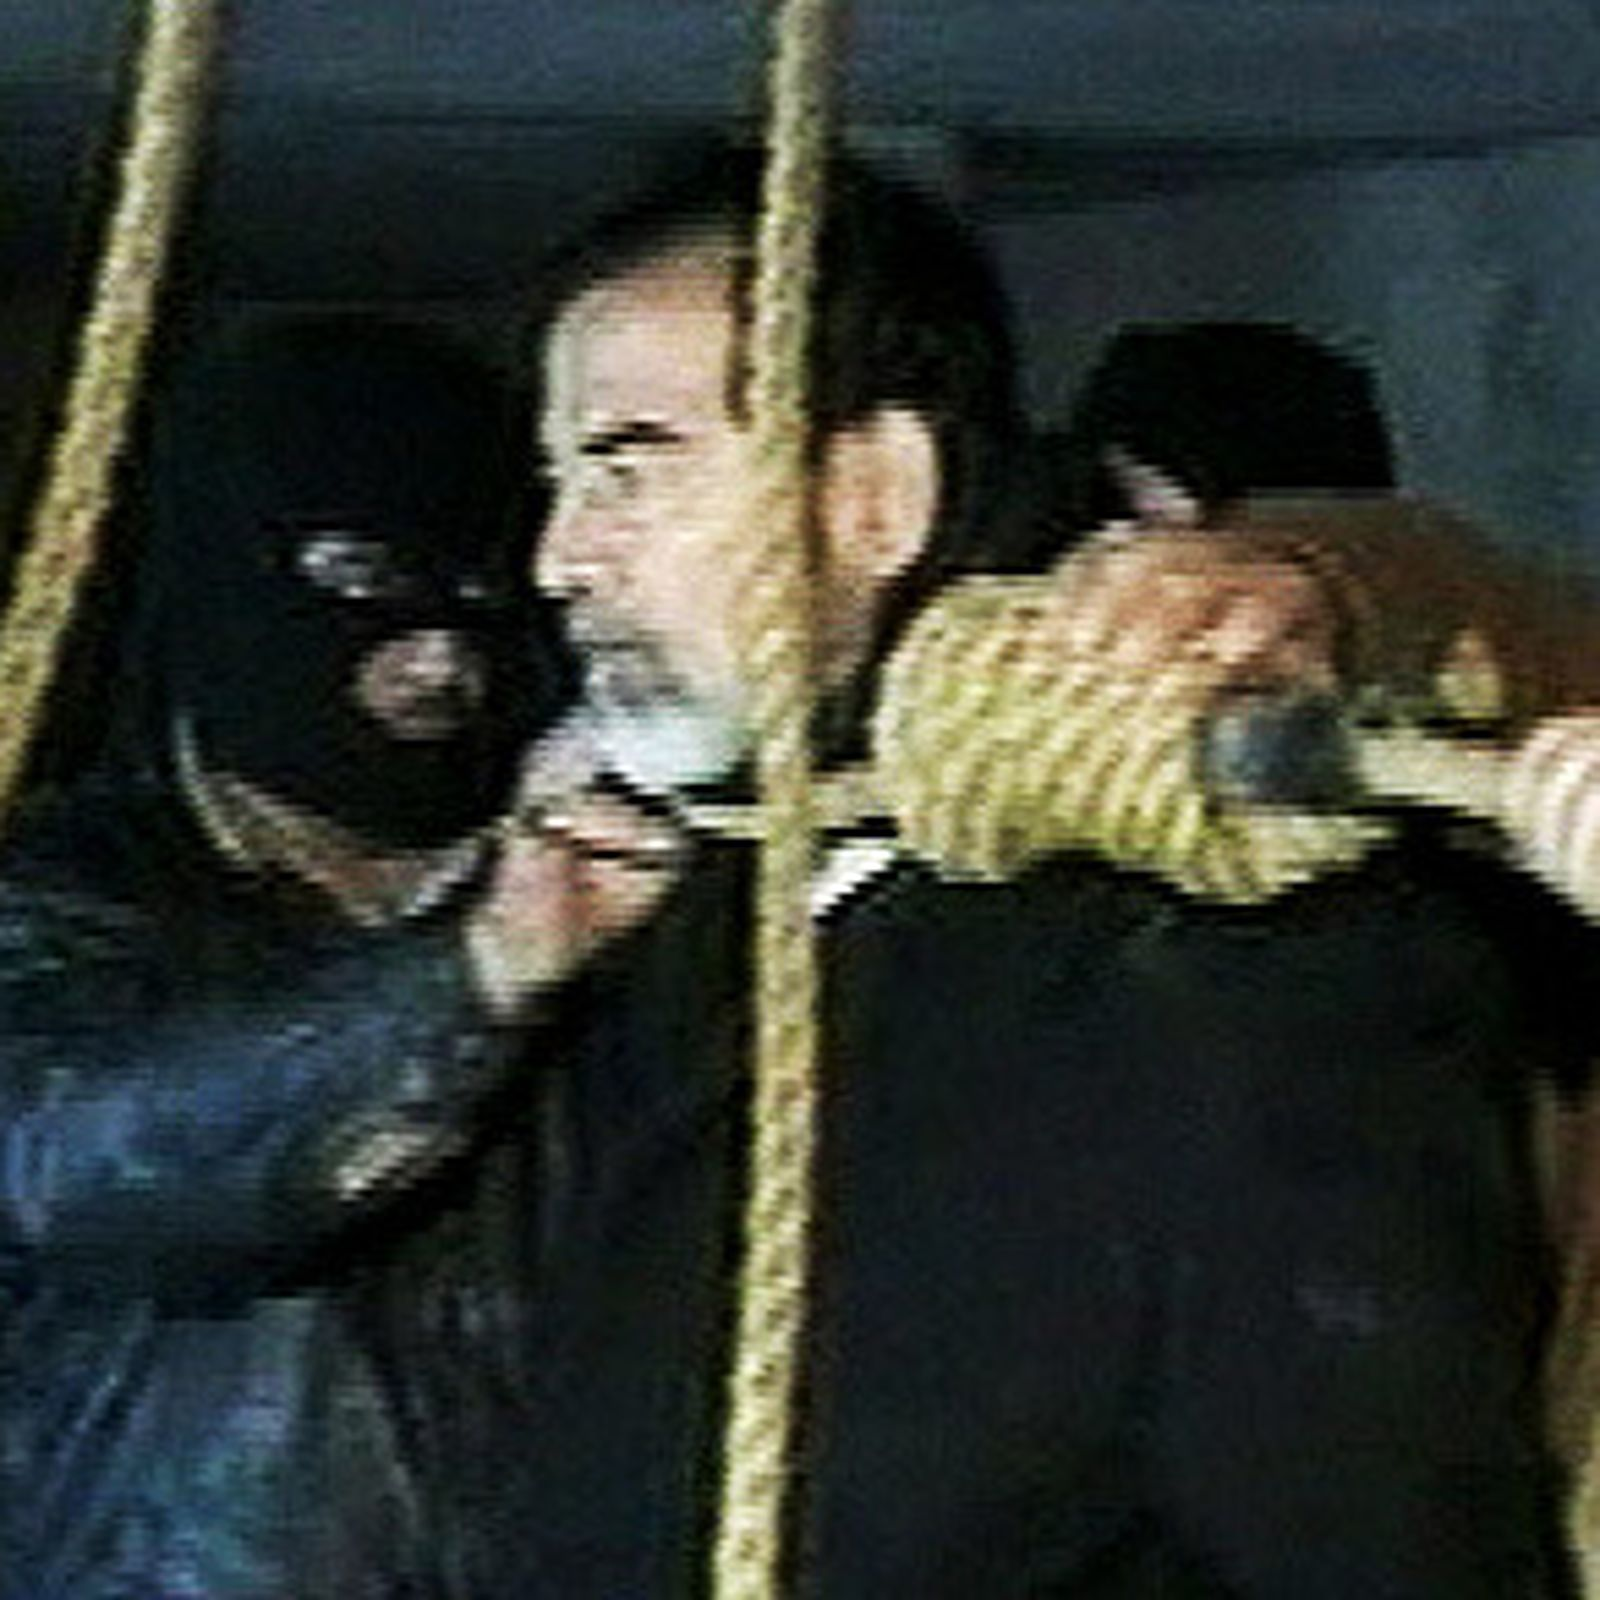 Amateur video shows the final moments of saddam